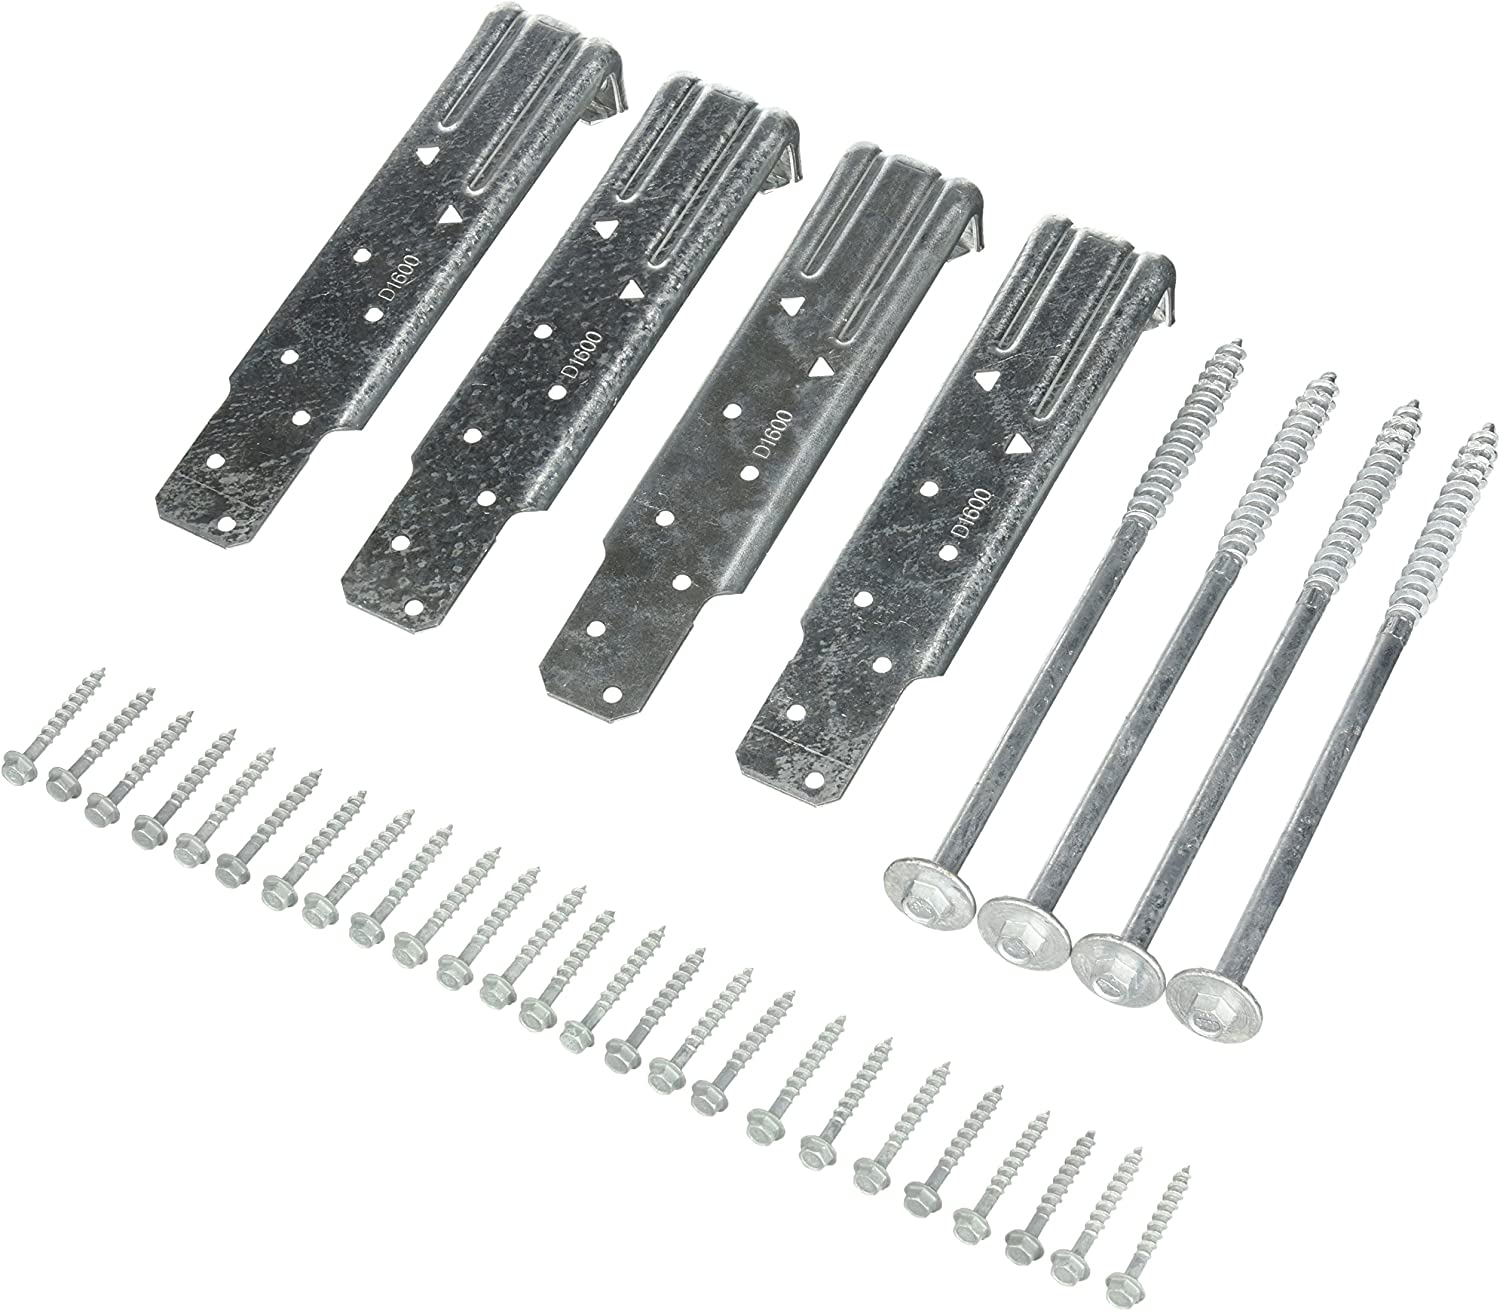 Simpson Strong-Tie DTT1Z-KT Deck Tension Tie Kit